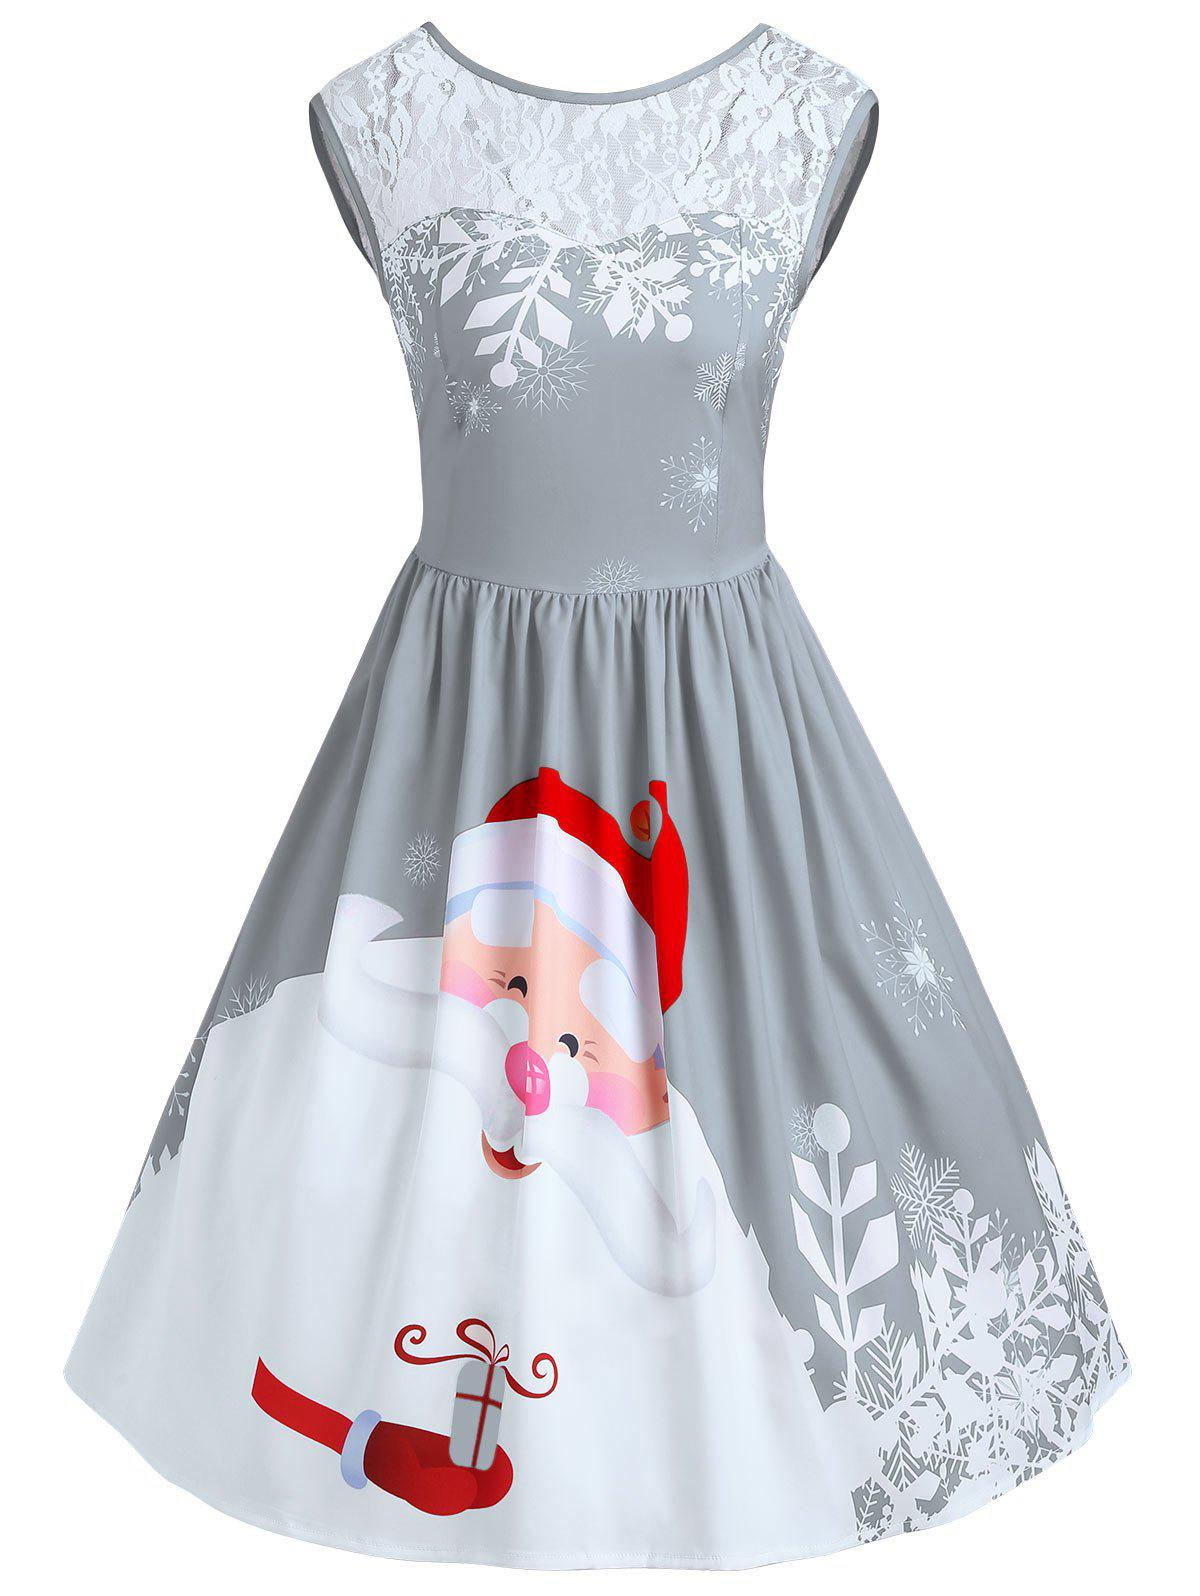 Christmas Santa Claus Print Lace Insert Party DressWOMEN<br><br>Size: 2XL; Color: FROST; Style: Vintage; Material: Polyester,Spandex; Silhouette: A-Line; Dresses Length: Knee-Length; Neckline: Round Collar; Sleeve Length: Sleeveless; Pattern Type: Patchwork,Print; With Belt: No; Season: Fall,Spring; Weight: 0.3500kg; Package Contents: 1 x Dress;